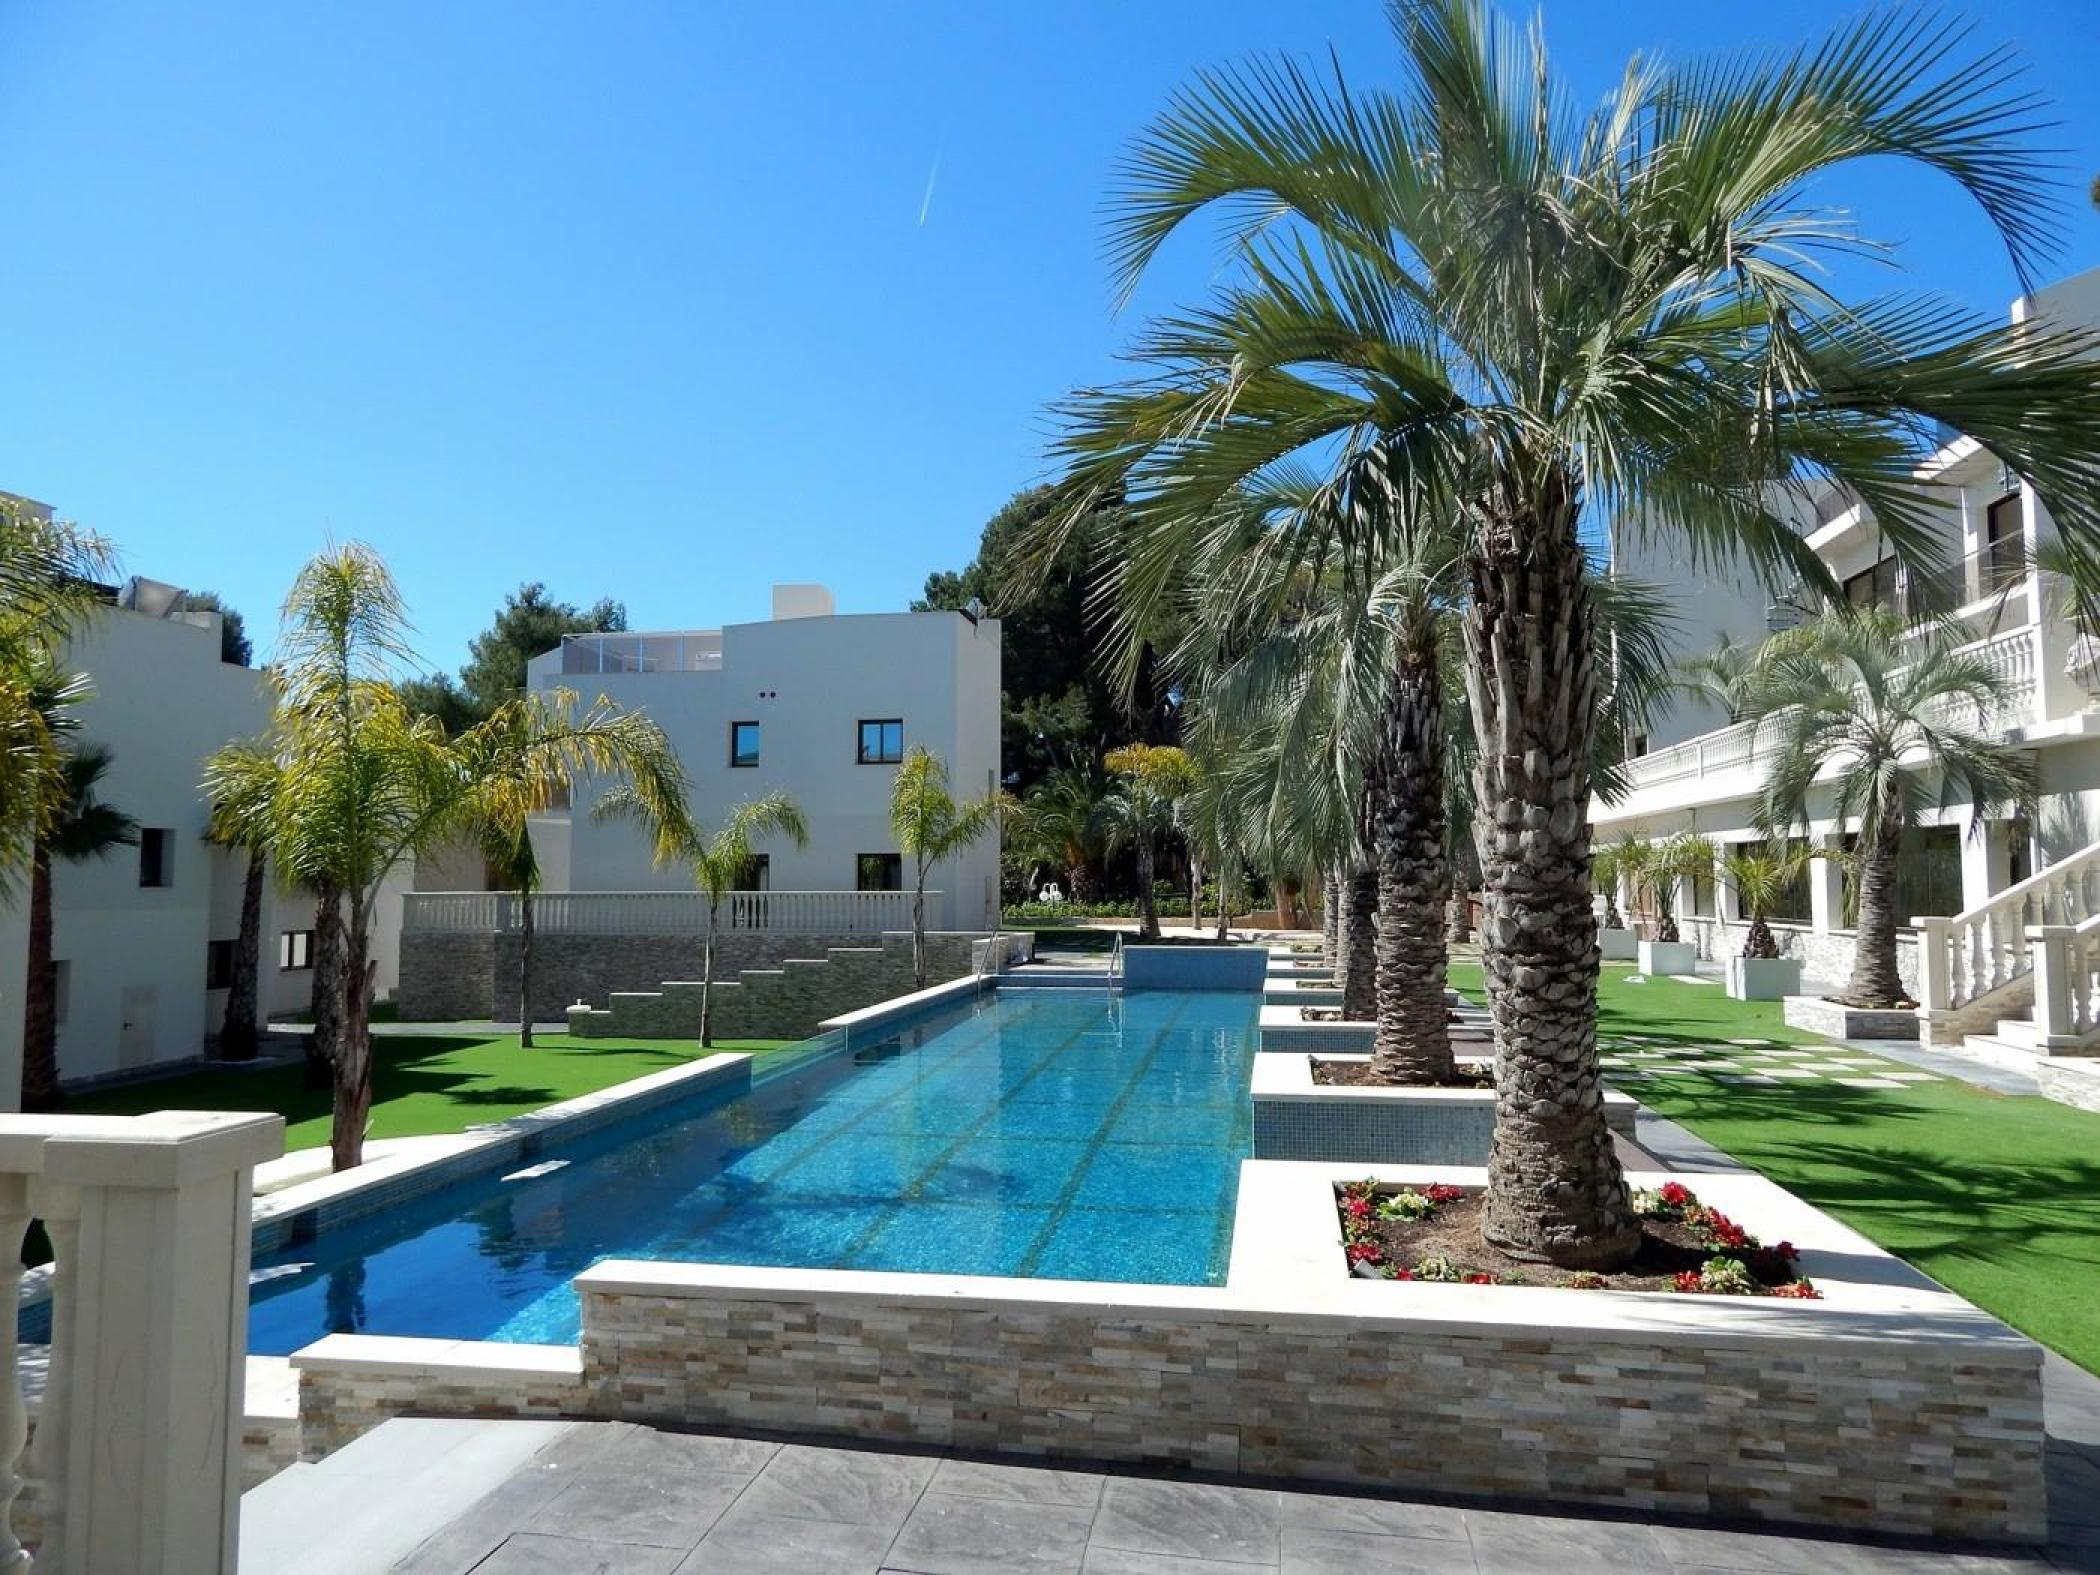 Rent Villa with Swimming pool in Platja d'Aro - Girorooms Travel Calma Holiday Villas jacuzzi 11 - 38